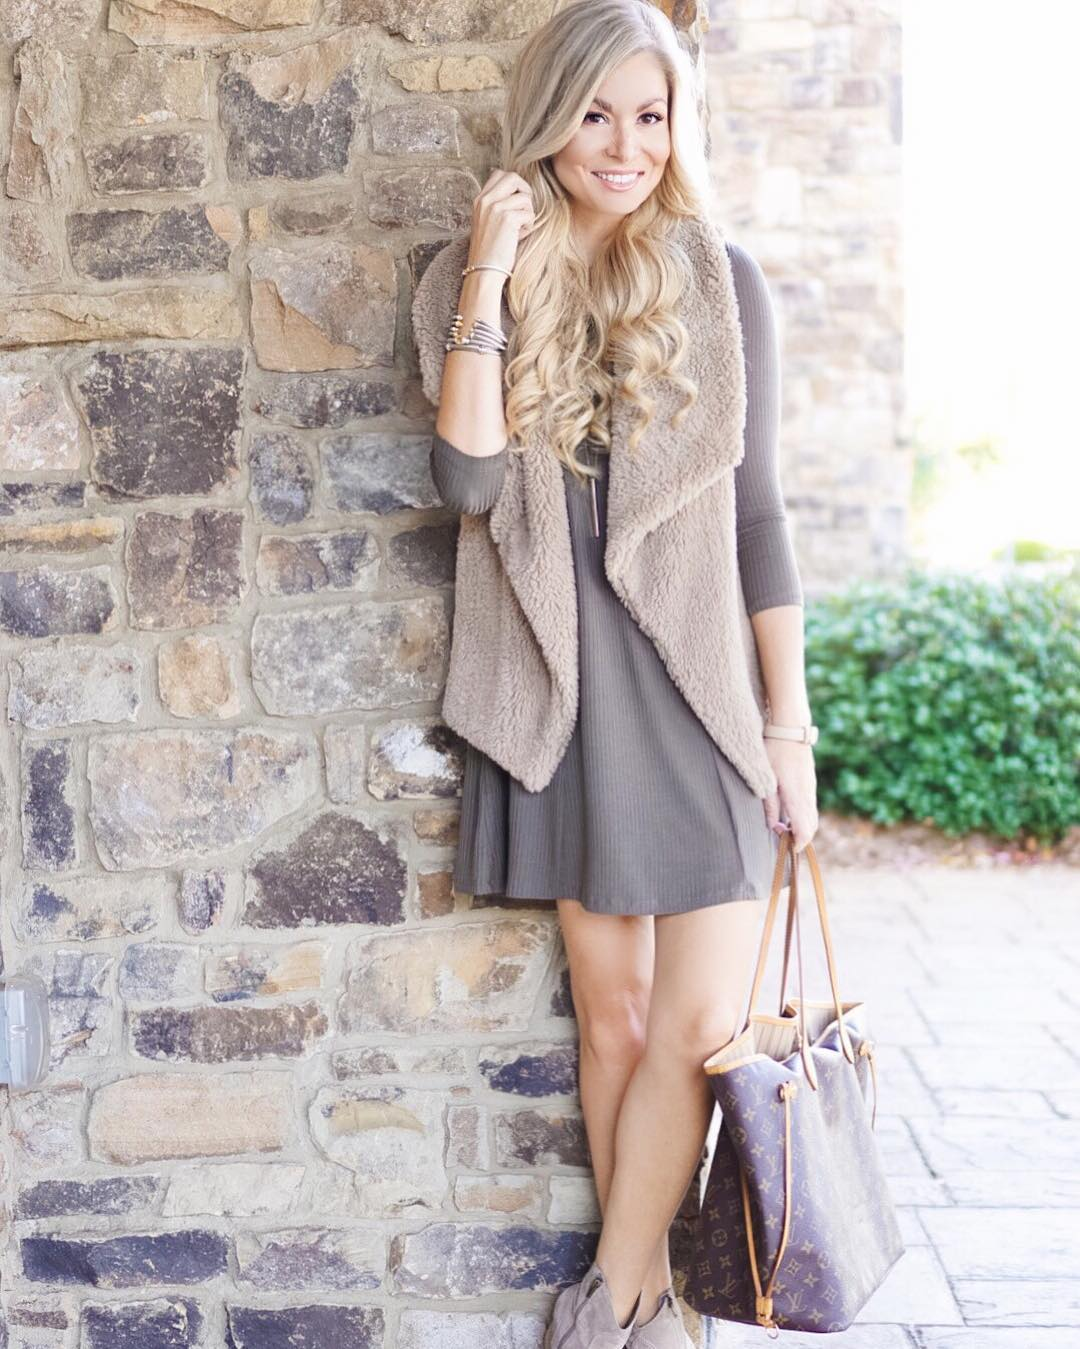 Headed to dinner and then ready for some Bama football! Perfect Saturday! http://liketk.it/2pxv2 @liketoknow.it #rolltide #saturdaze #fall #fallfashion #ootd #wiw #sabanforpresident